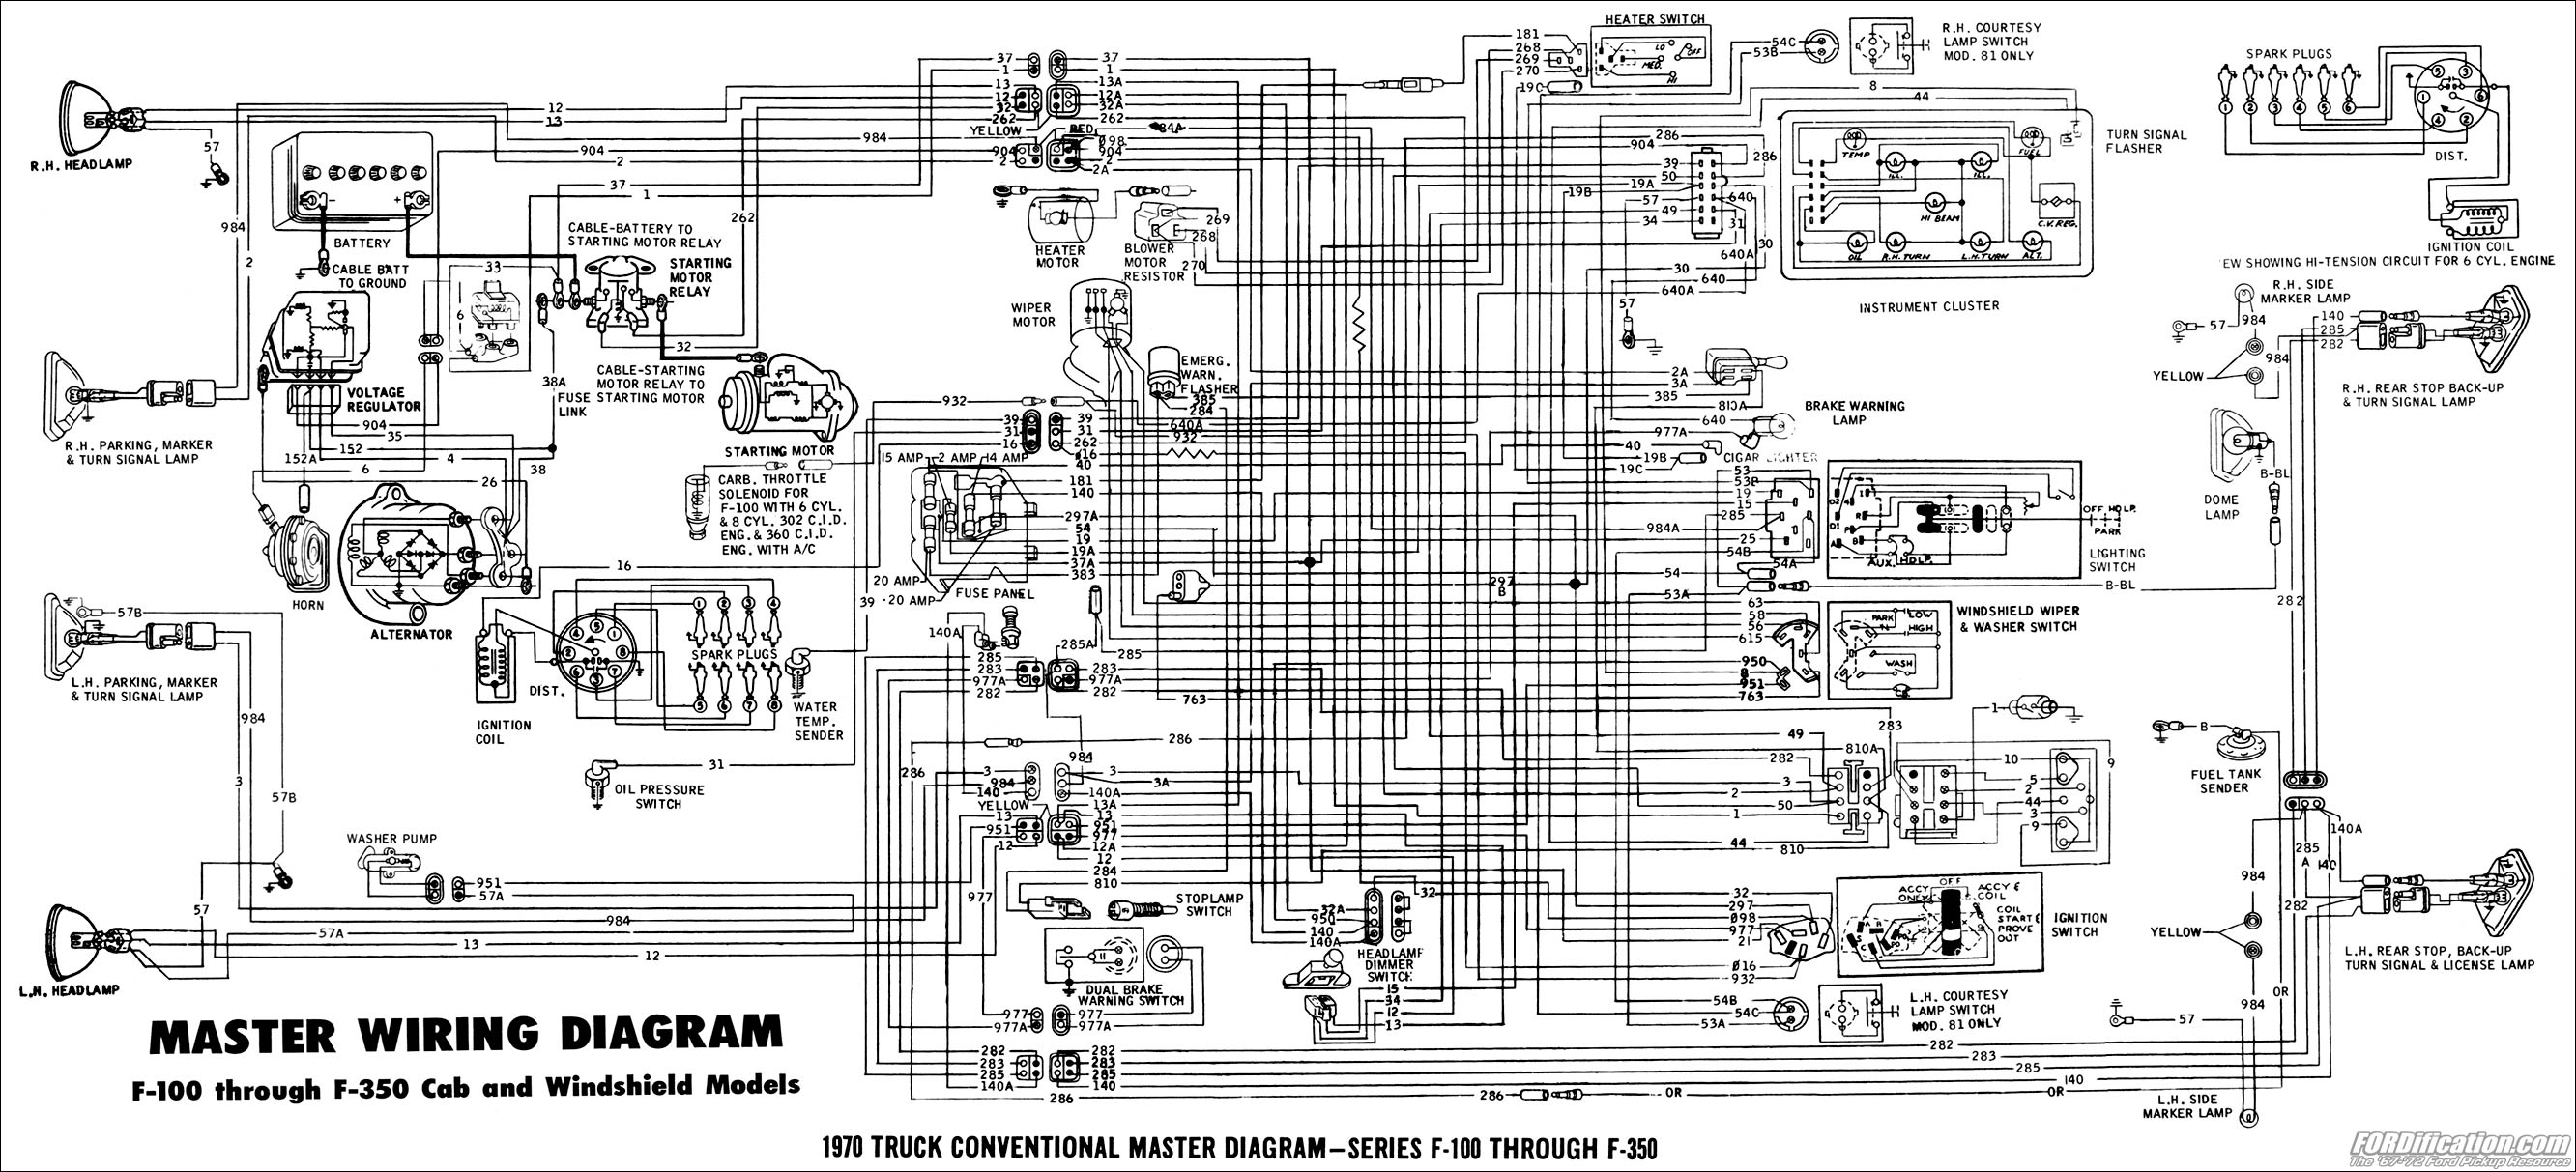 Wiring Diagram 1970 Ford F 250 Simple Site Need For 1994 E250 Van Starter Solenoid Fixya F250 Online 1997 1971